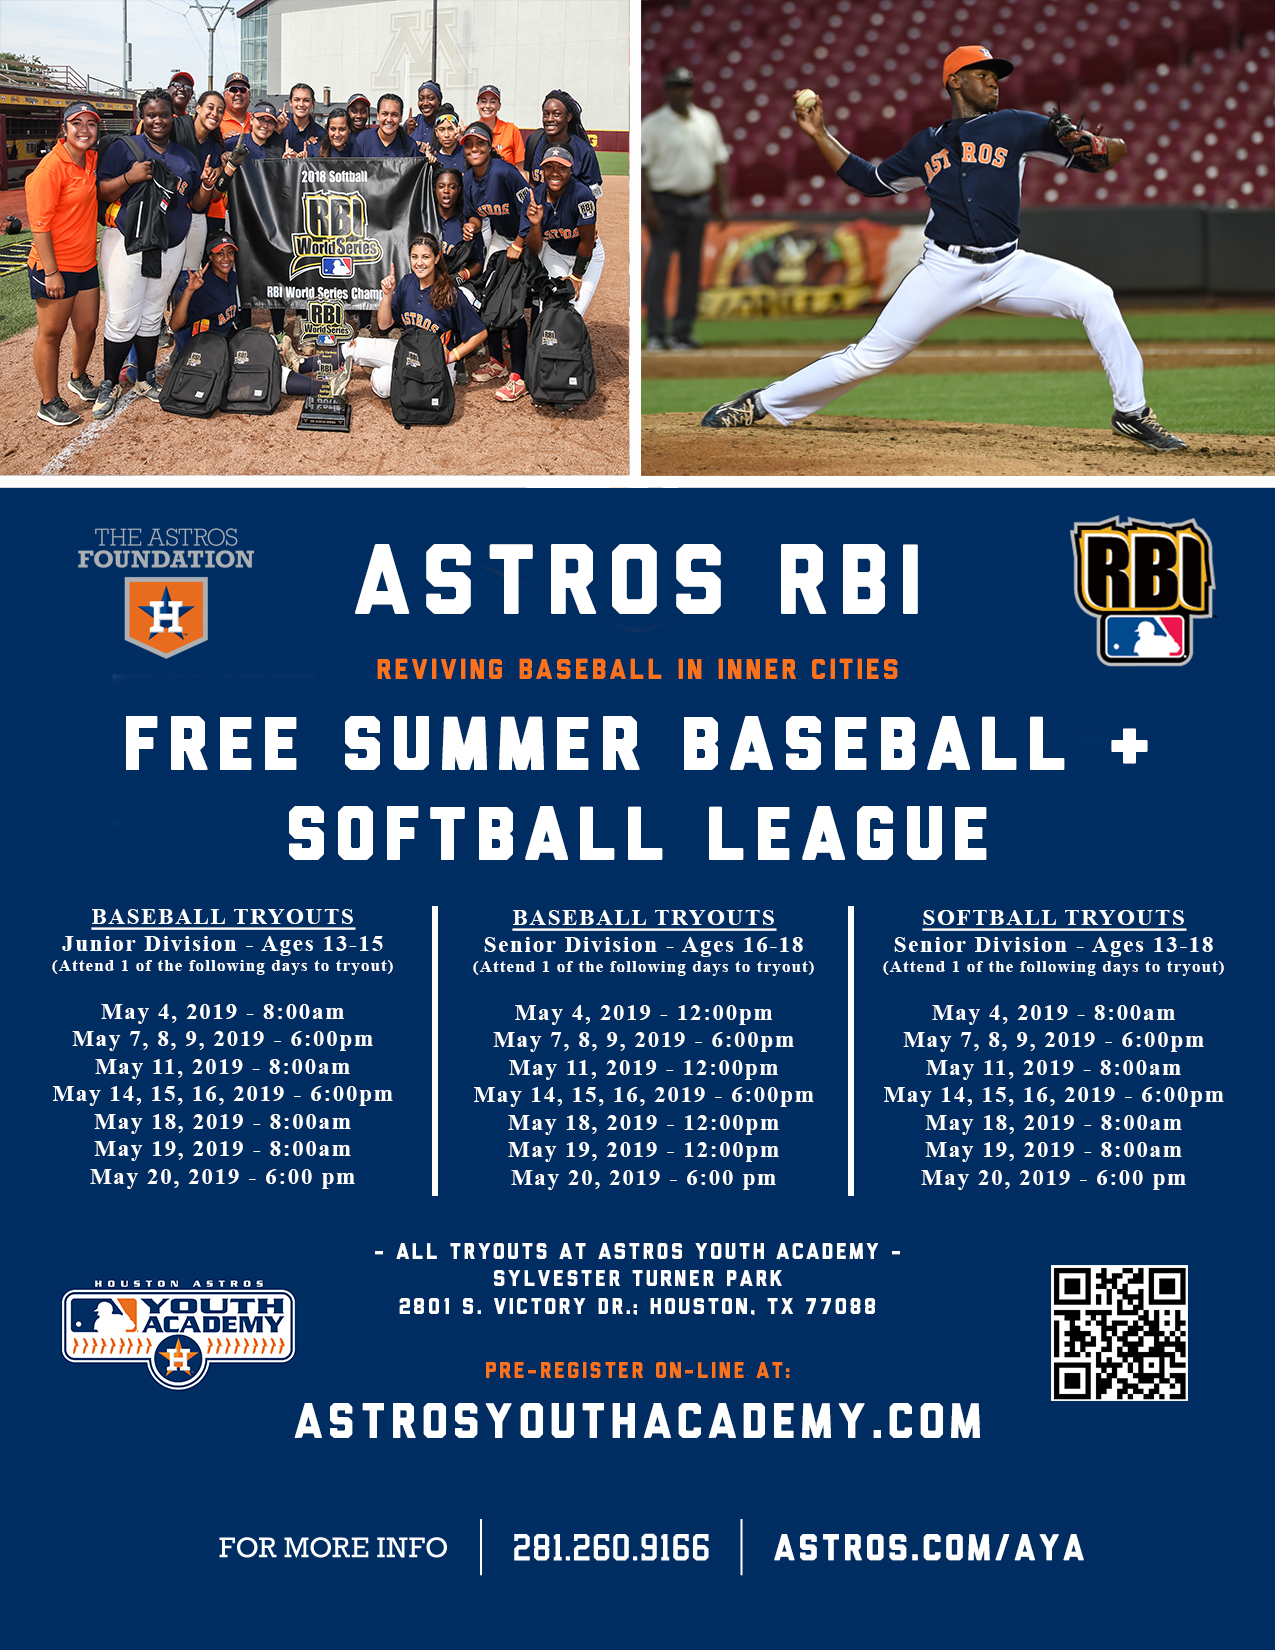 2019 Astros RBI Summer League At Sylvester Turner Park (Ages 13-18